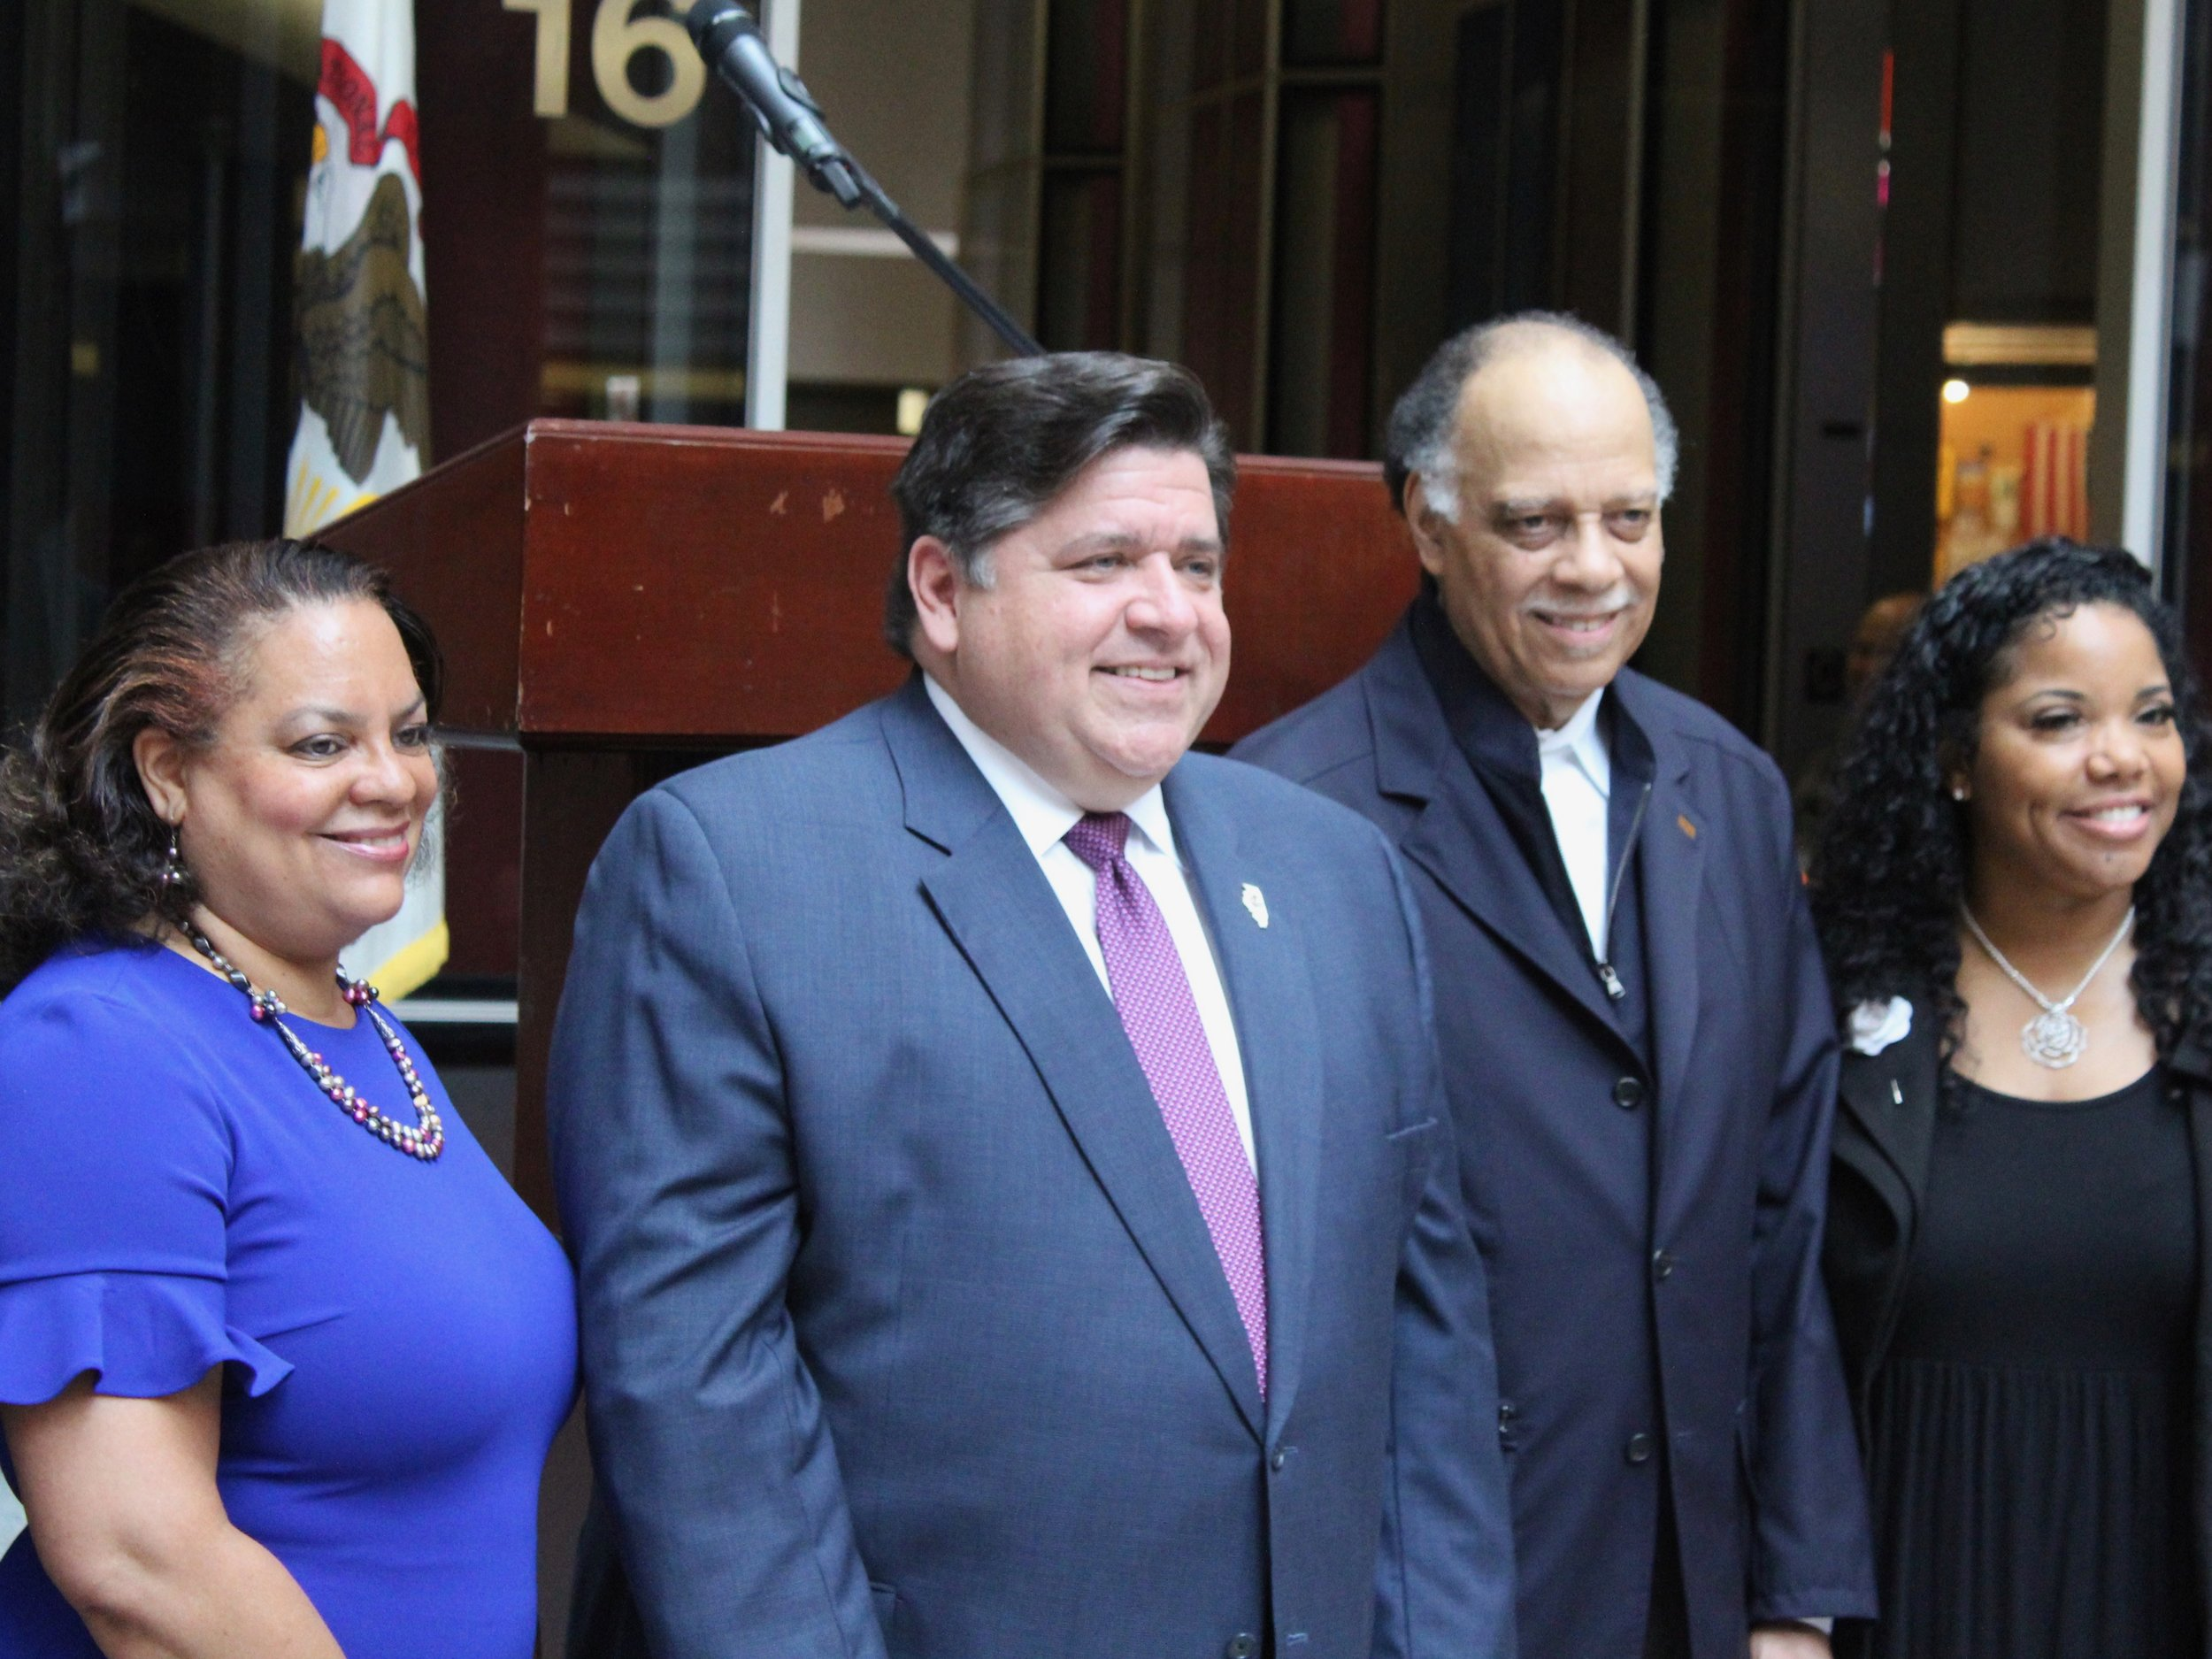 Gov. Pritzker poses with Juneteenth honorees Michelle Duster, Haki Madhubuti, and Myiti Sengstacke-Rice at Wednesday's ceremony. (One Illinois/Ted Cox)